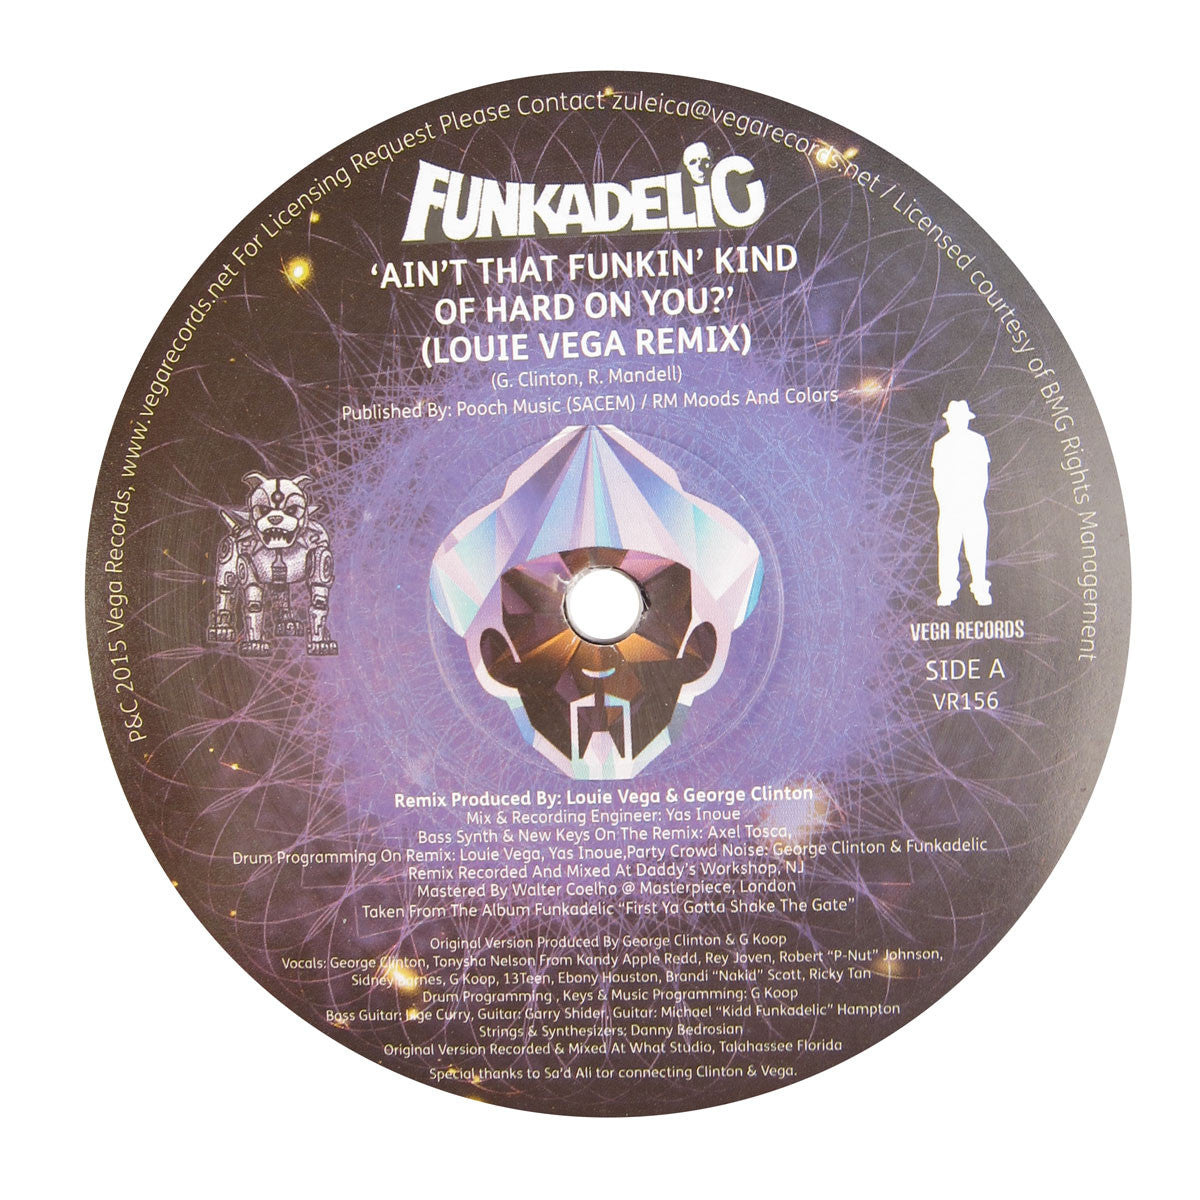 Funkadelic: Ain't That Funkin Kind Hard On You? (Louie Vega Remix) Vinyl 12""